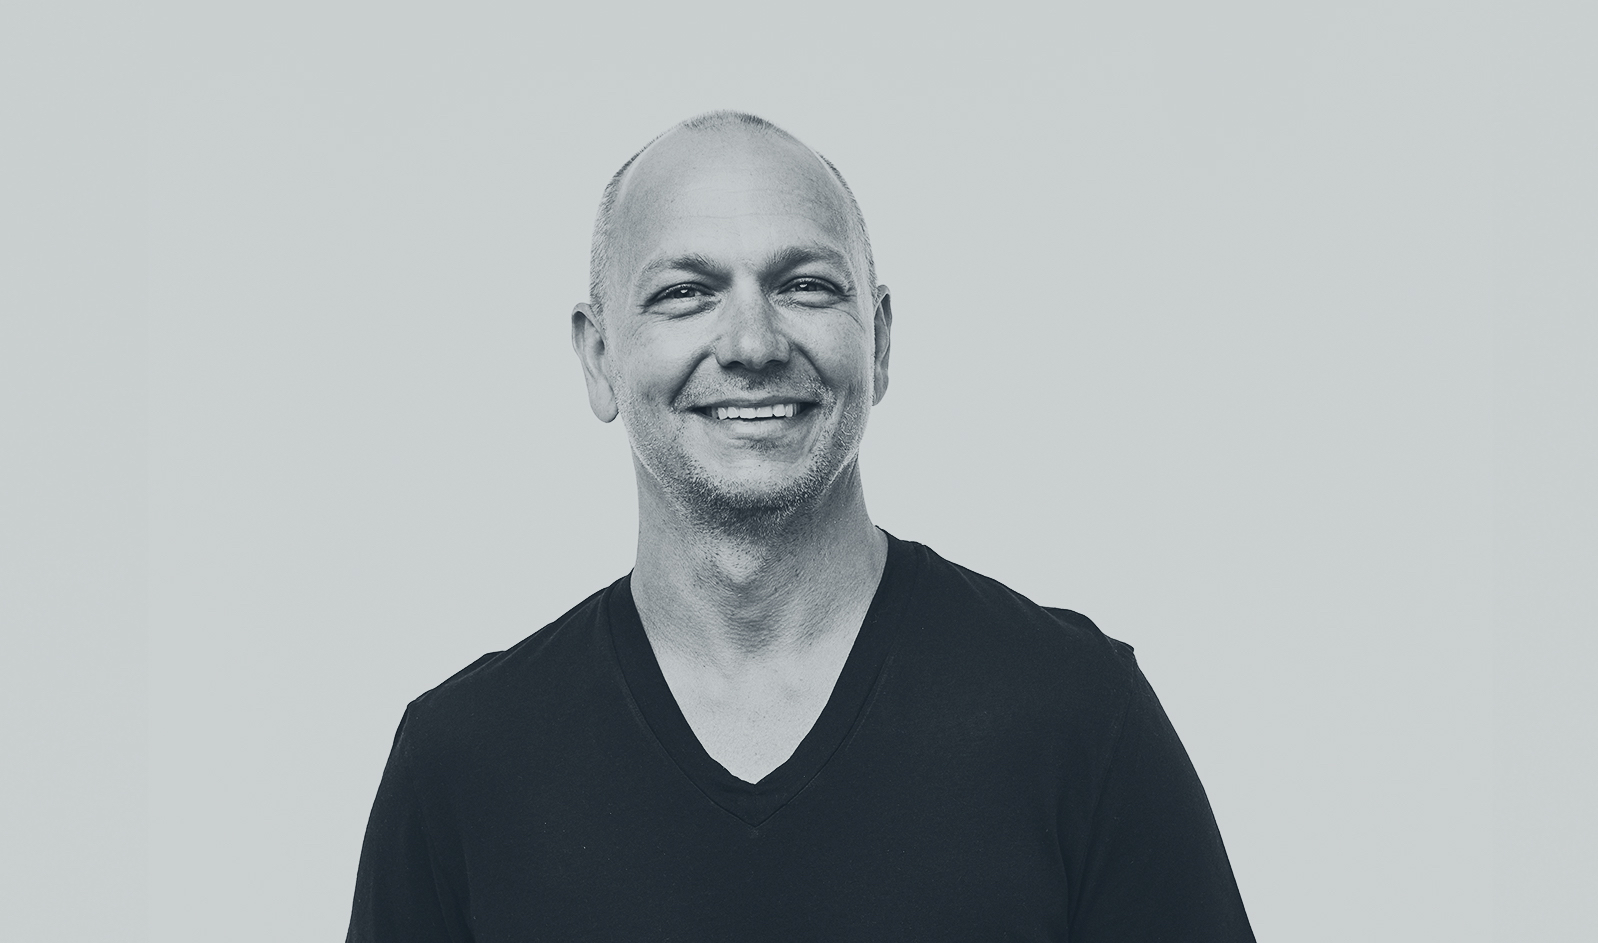 Scouting deeptech startups with iPod inventor Tony Fadell